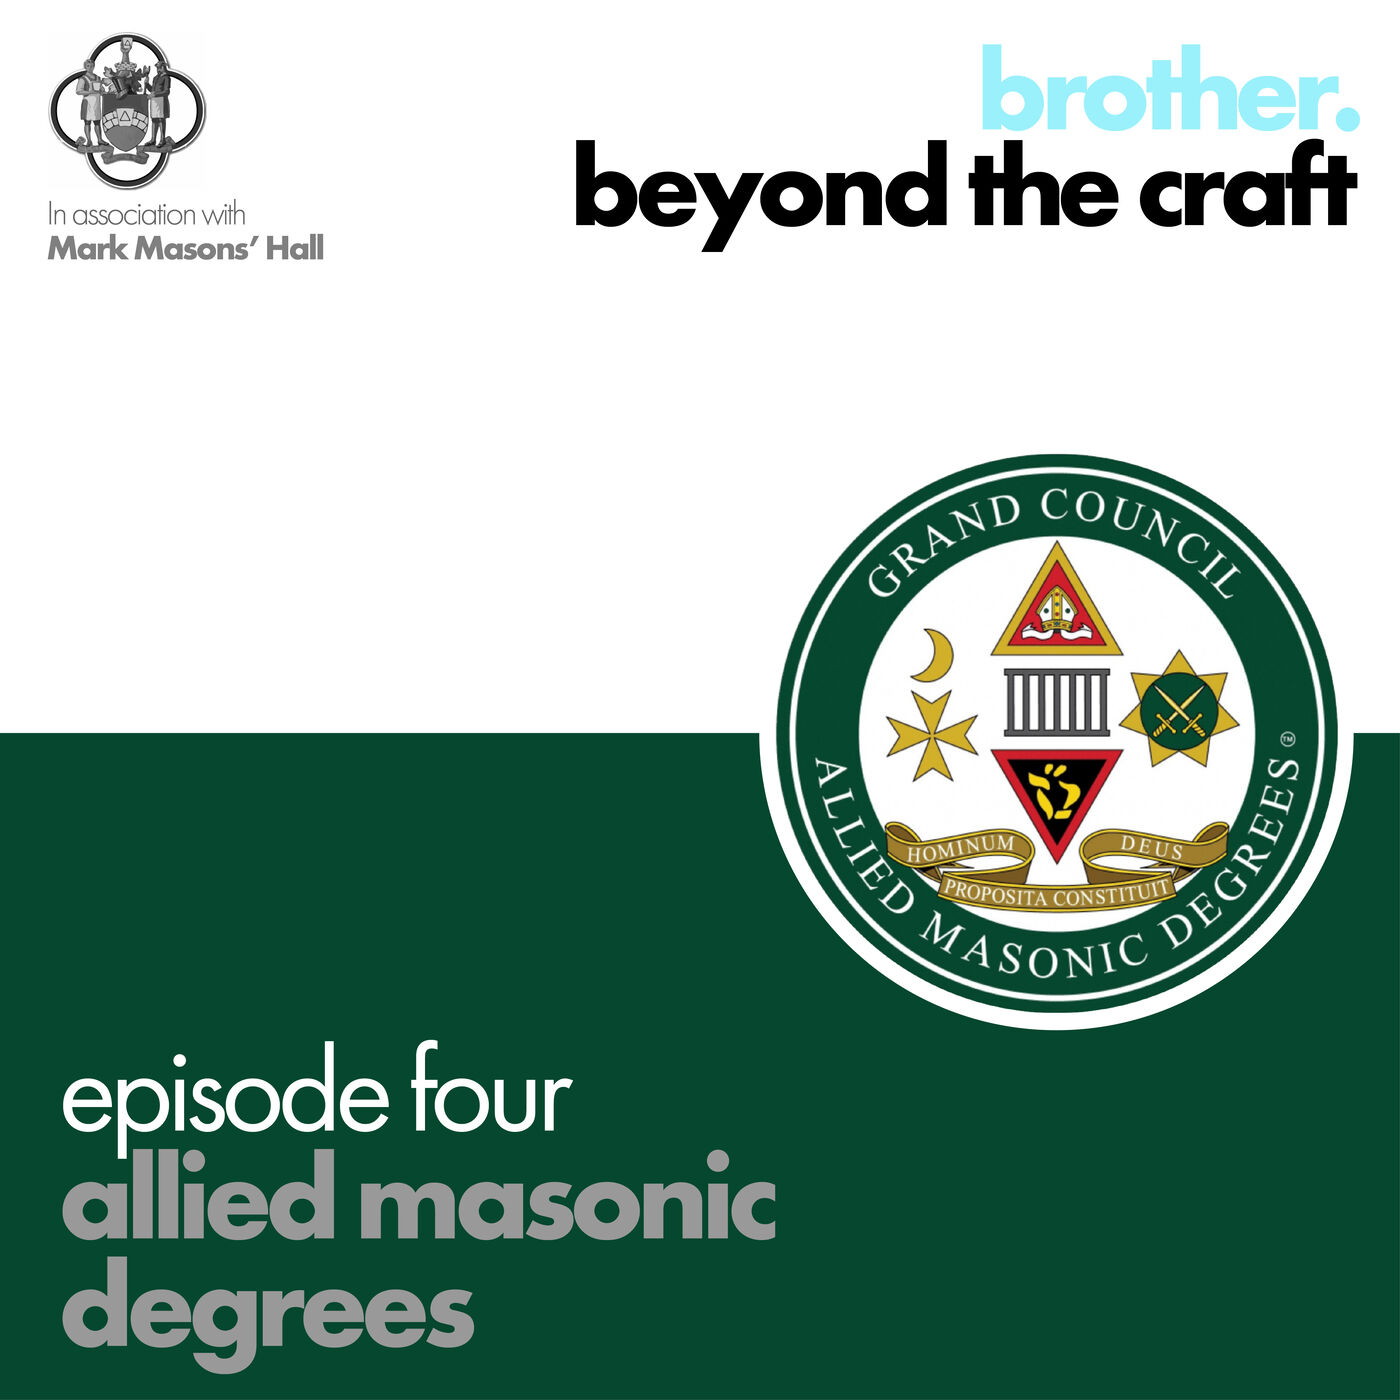 Brother: Beyond the Craft - Allied Masonic Degrees